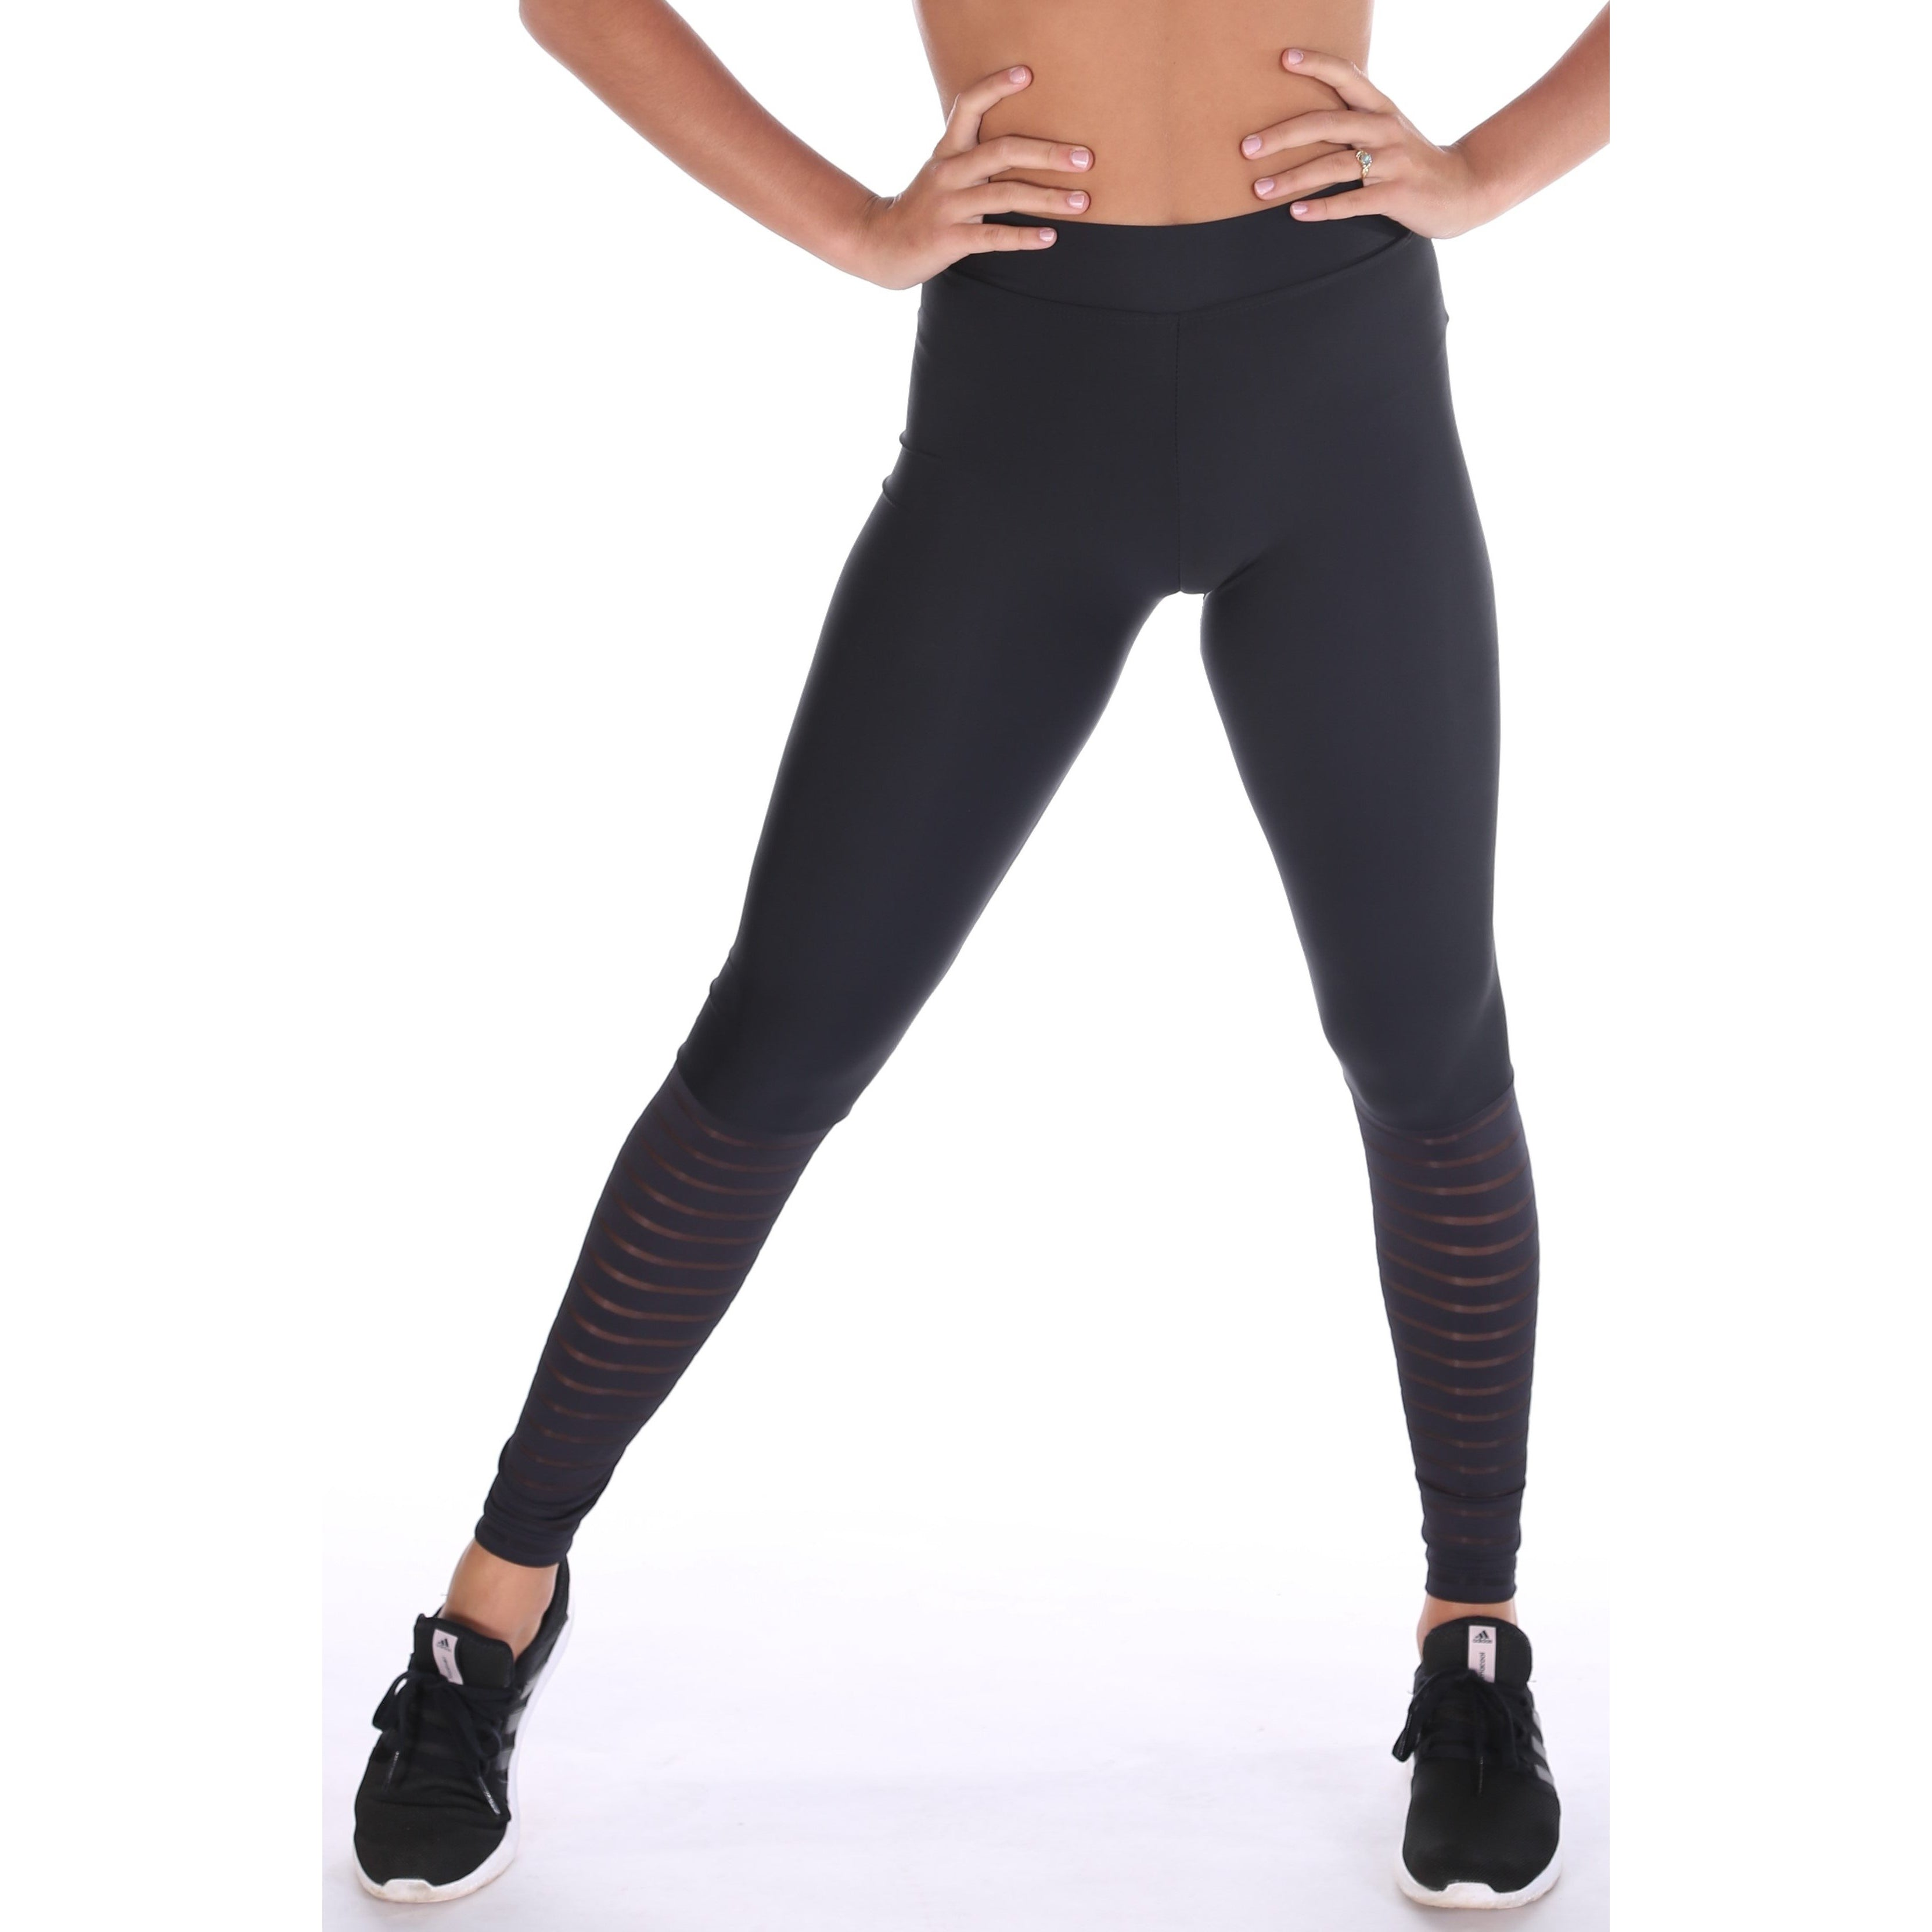 Ladies Sprint Active Tights-TIGHTS-Cosi G Studiowear